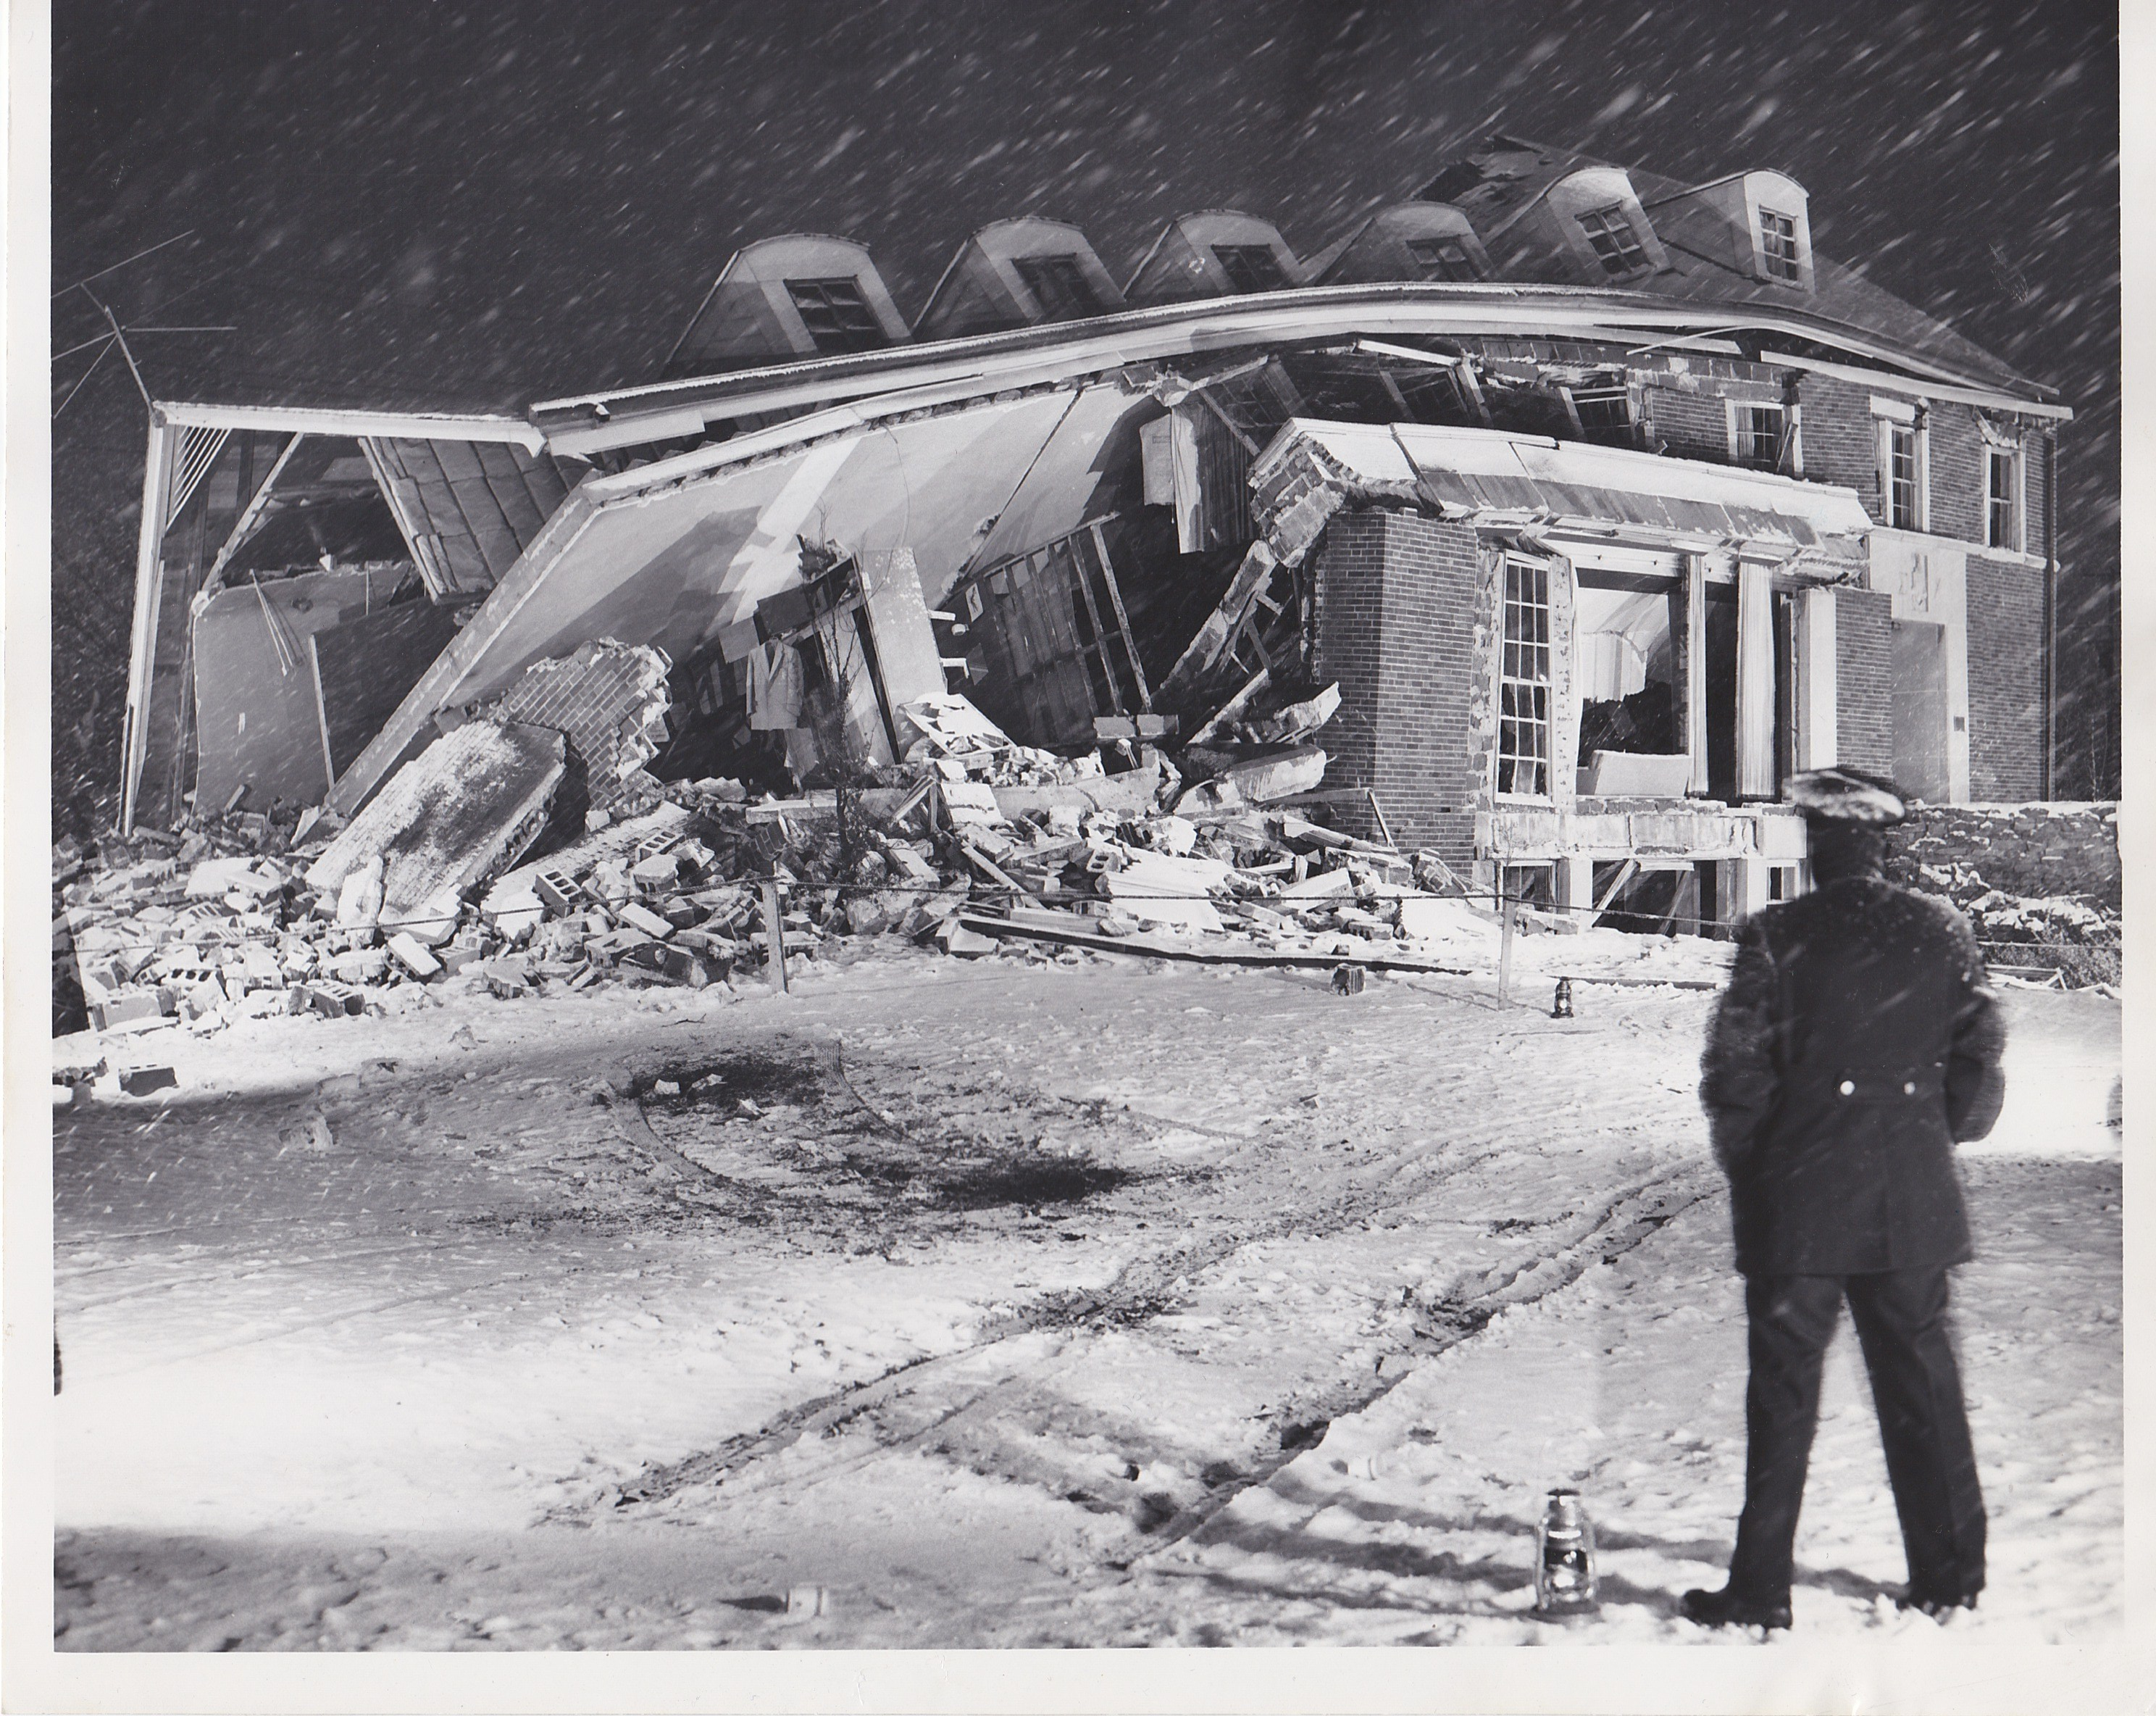 Aftermath of the explosion at the Sigma Chi house in November 1955. Amazingly, no lives were lost. (Photo courtesy of Indianapolis Star)